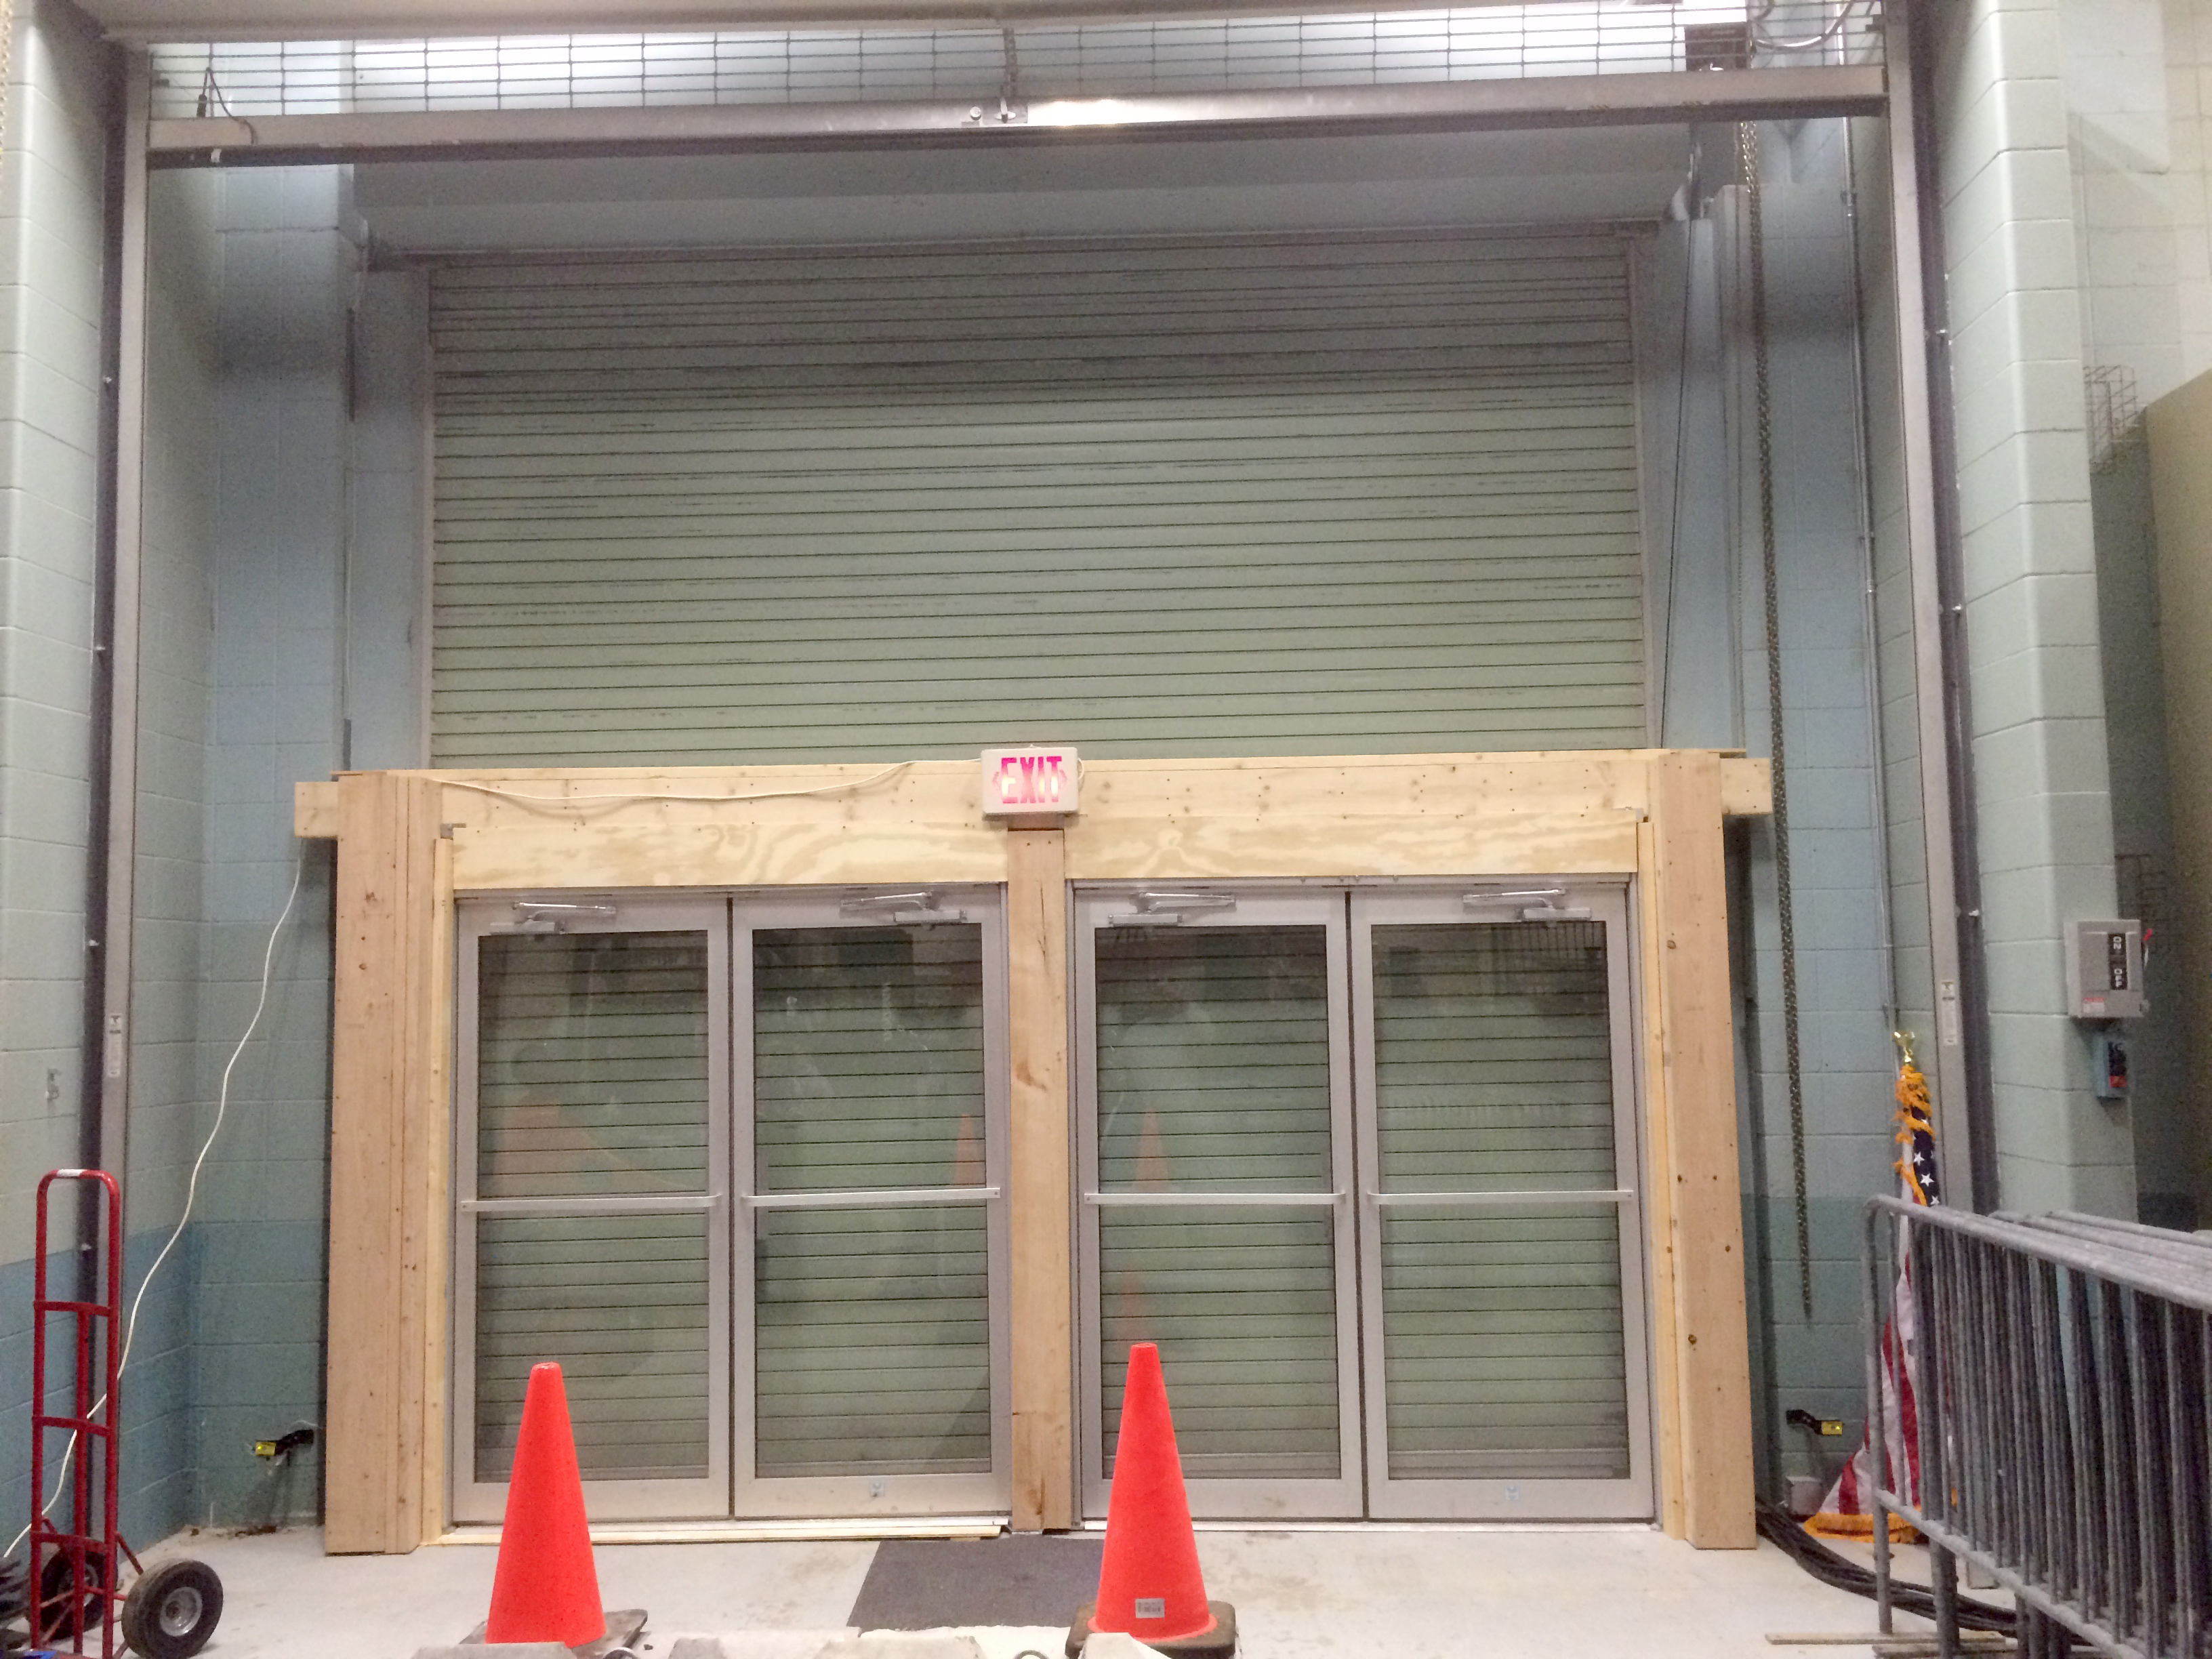 Temporary double glass door fire exits to increase event hall capacity